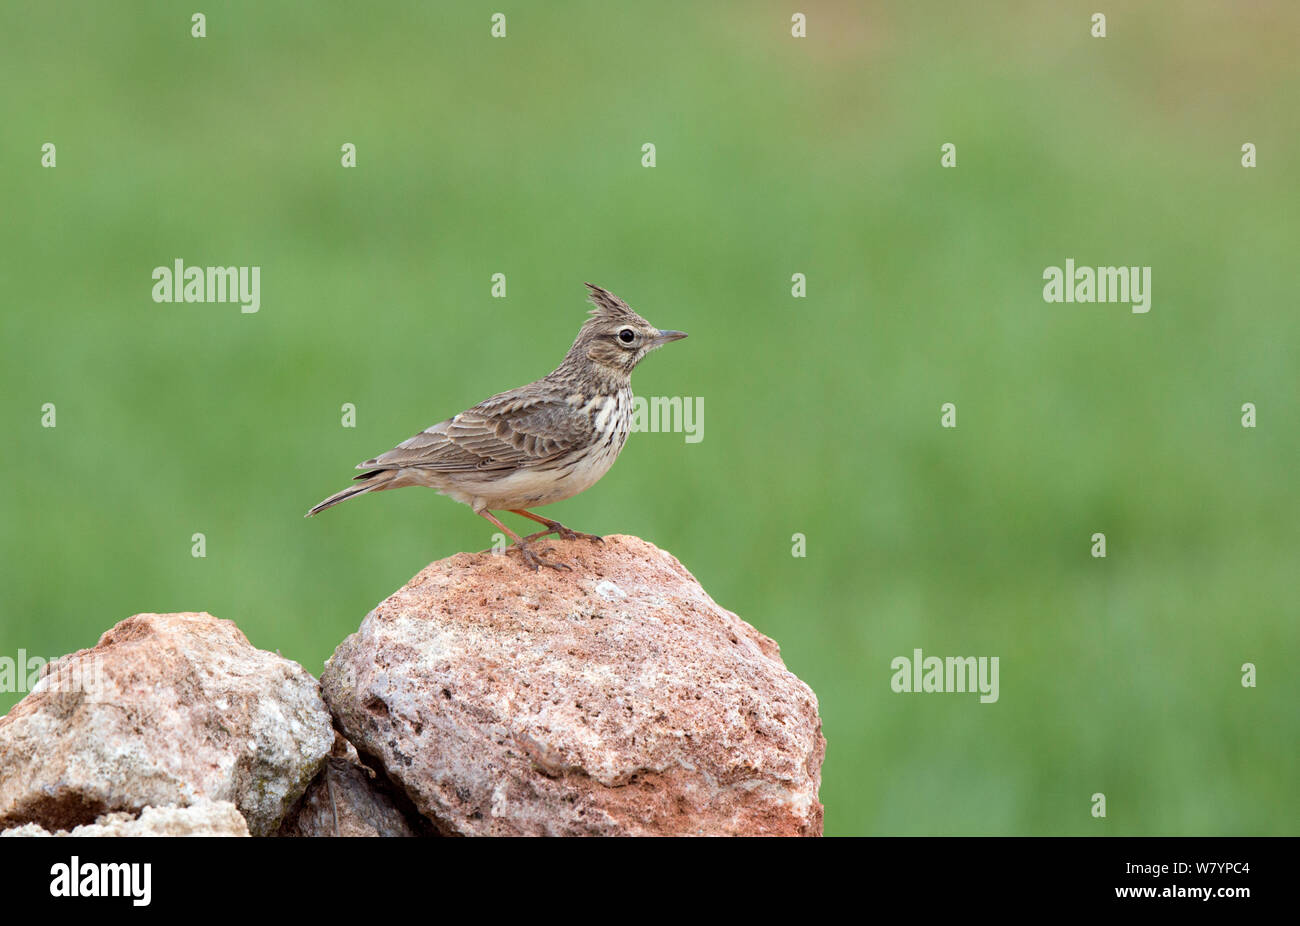 Crested Lark (Galerida cristata) perched on rock, Spain, March. Stock Photo